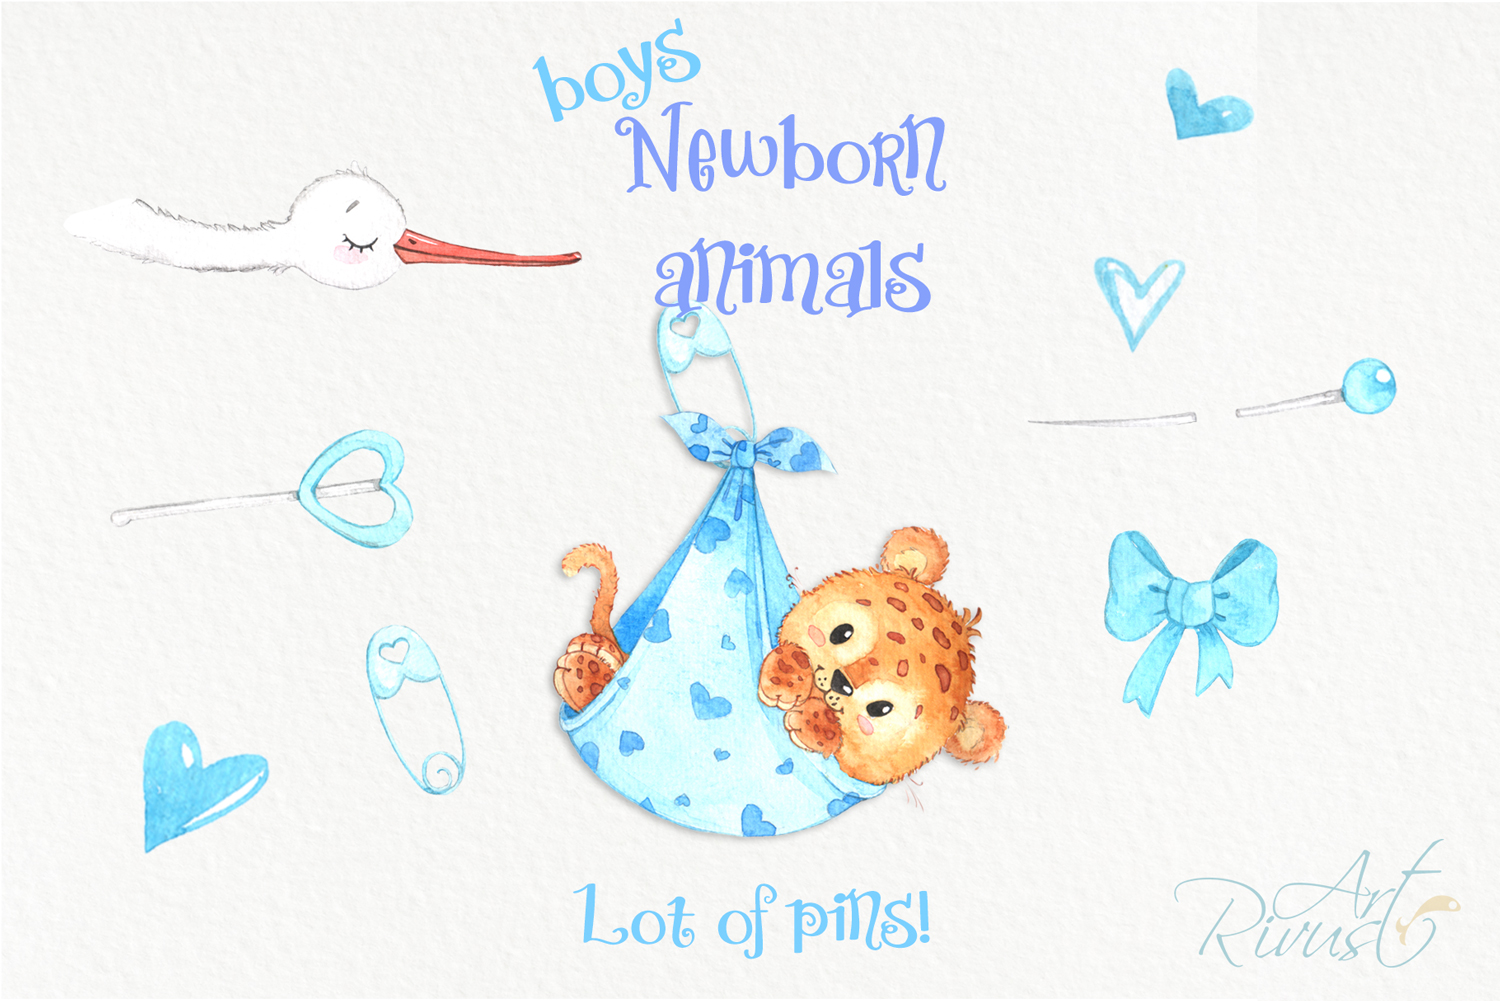 It's a boy Newborn animals clipart PNG download. African Saf example image 5